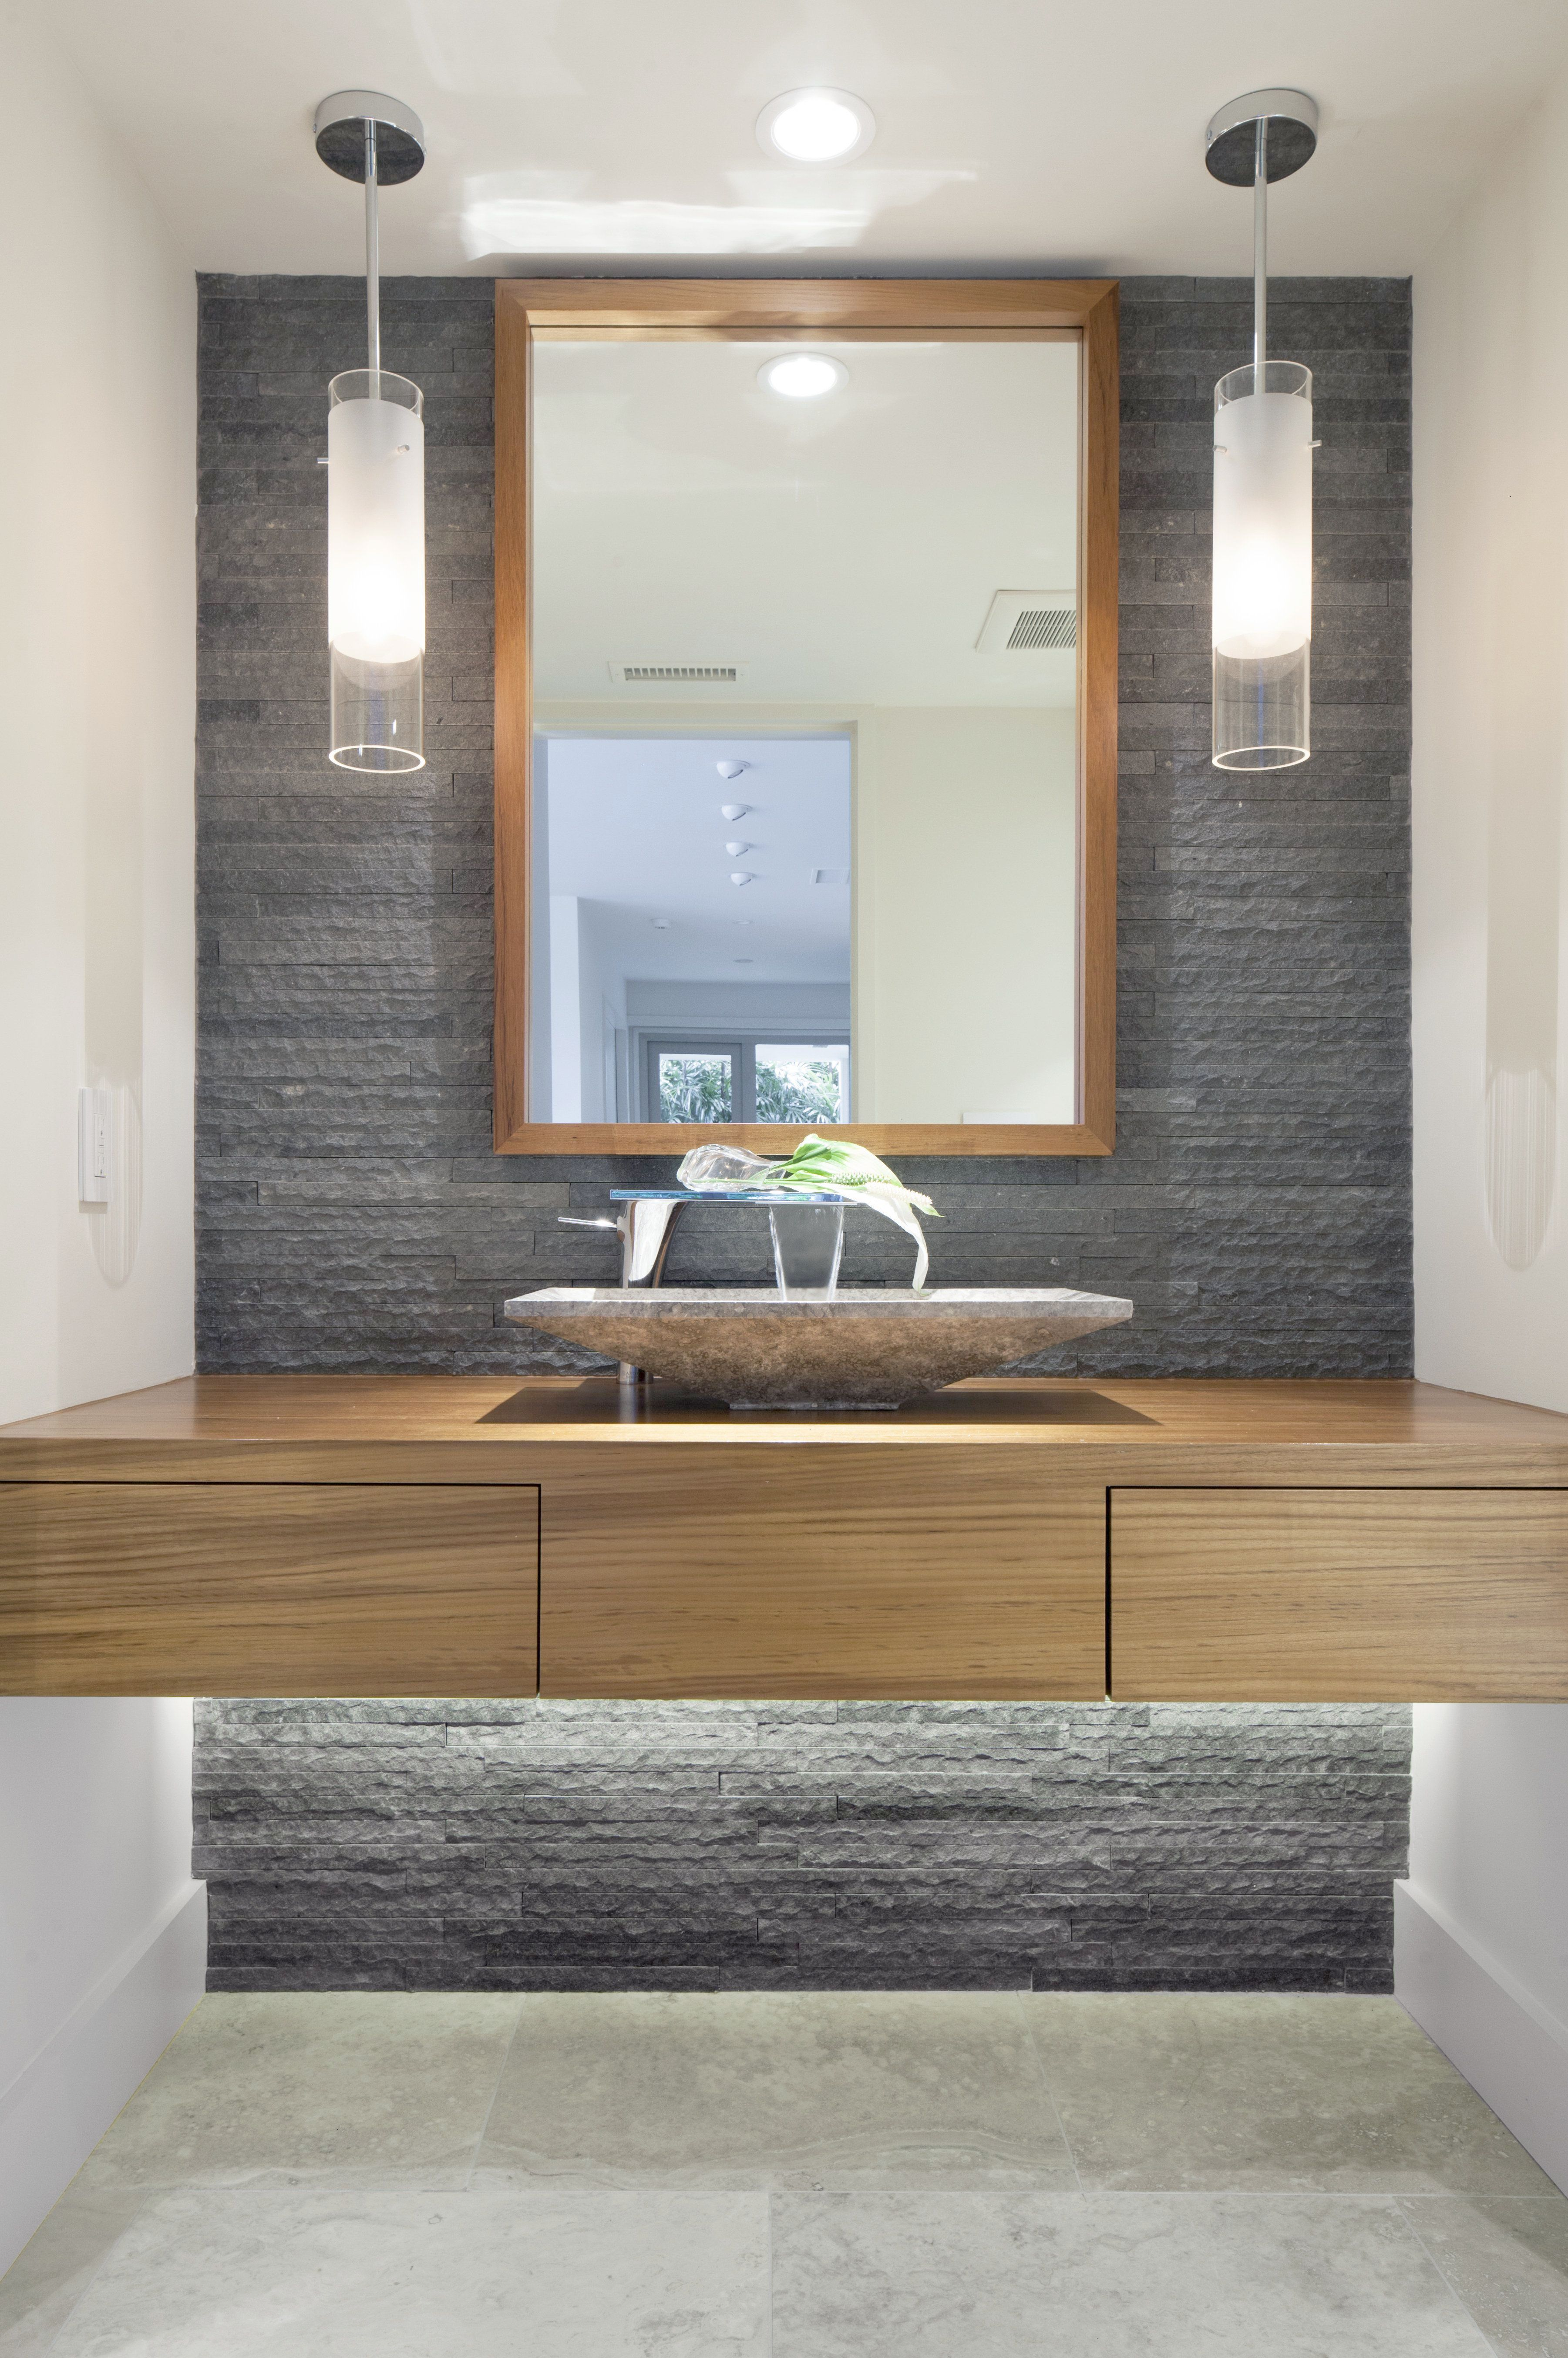 A Modern Bathroom With Natural Stone Accent Wall And Pendant